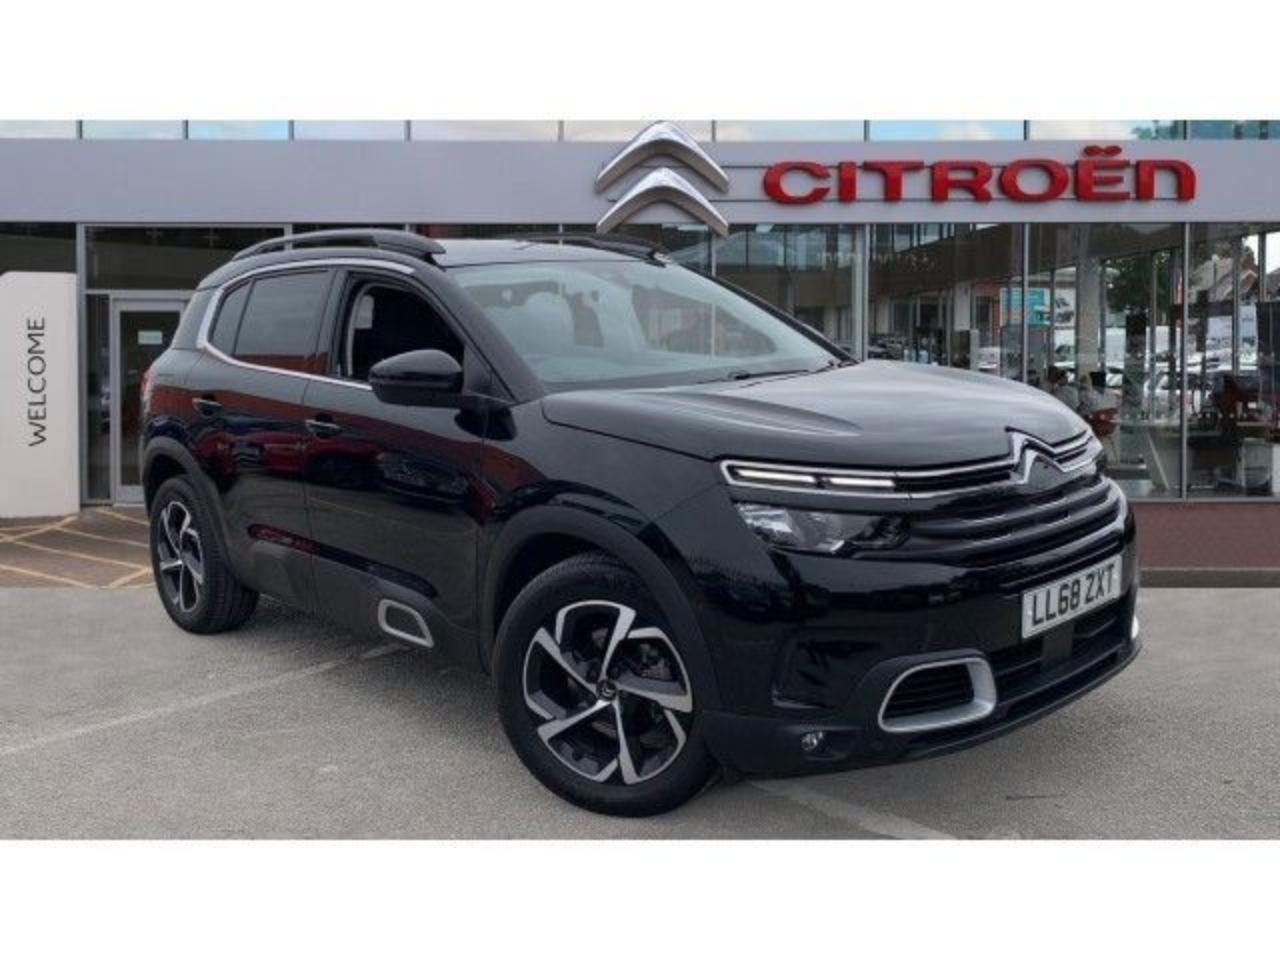 Citroën C5 Aircross SUV C5 AIRCROSS 1.5 BlueHDi 130 Flair 5dr Diesel Hatchback